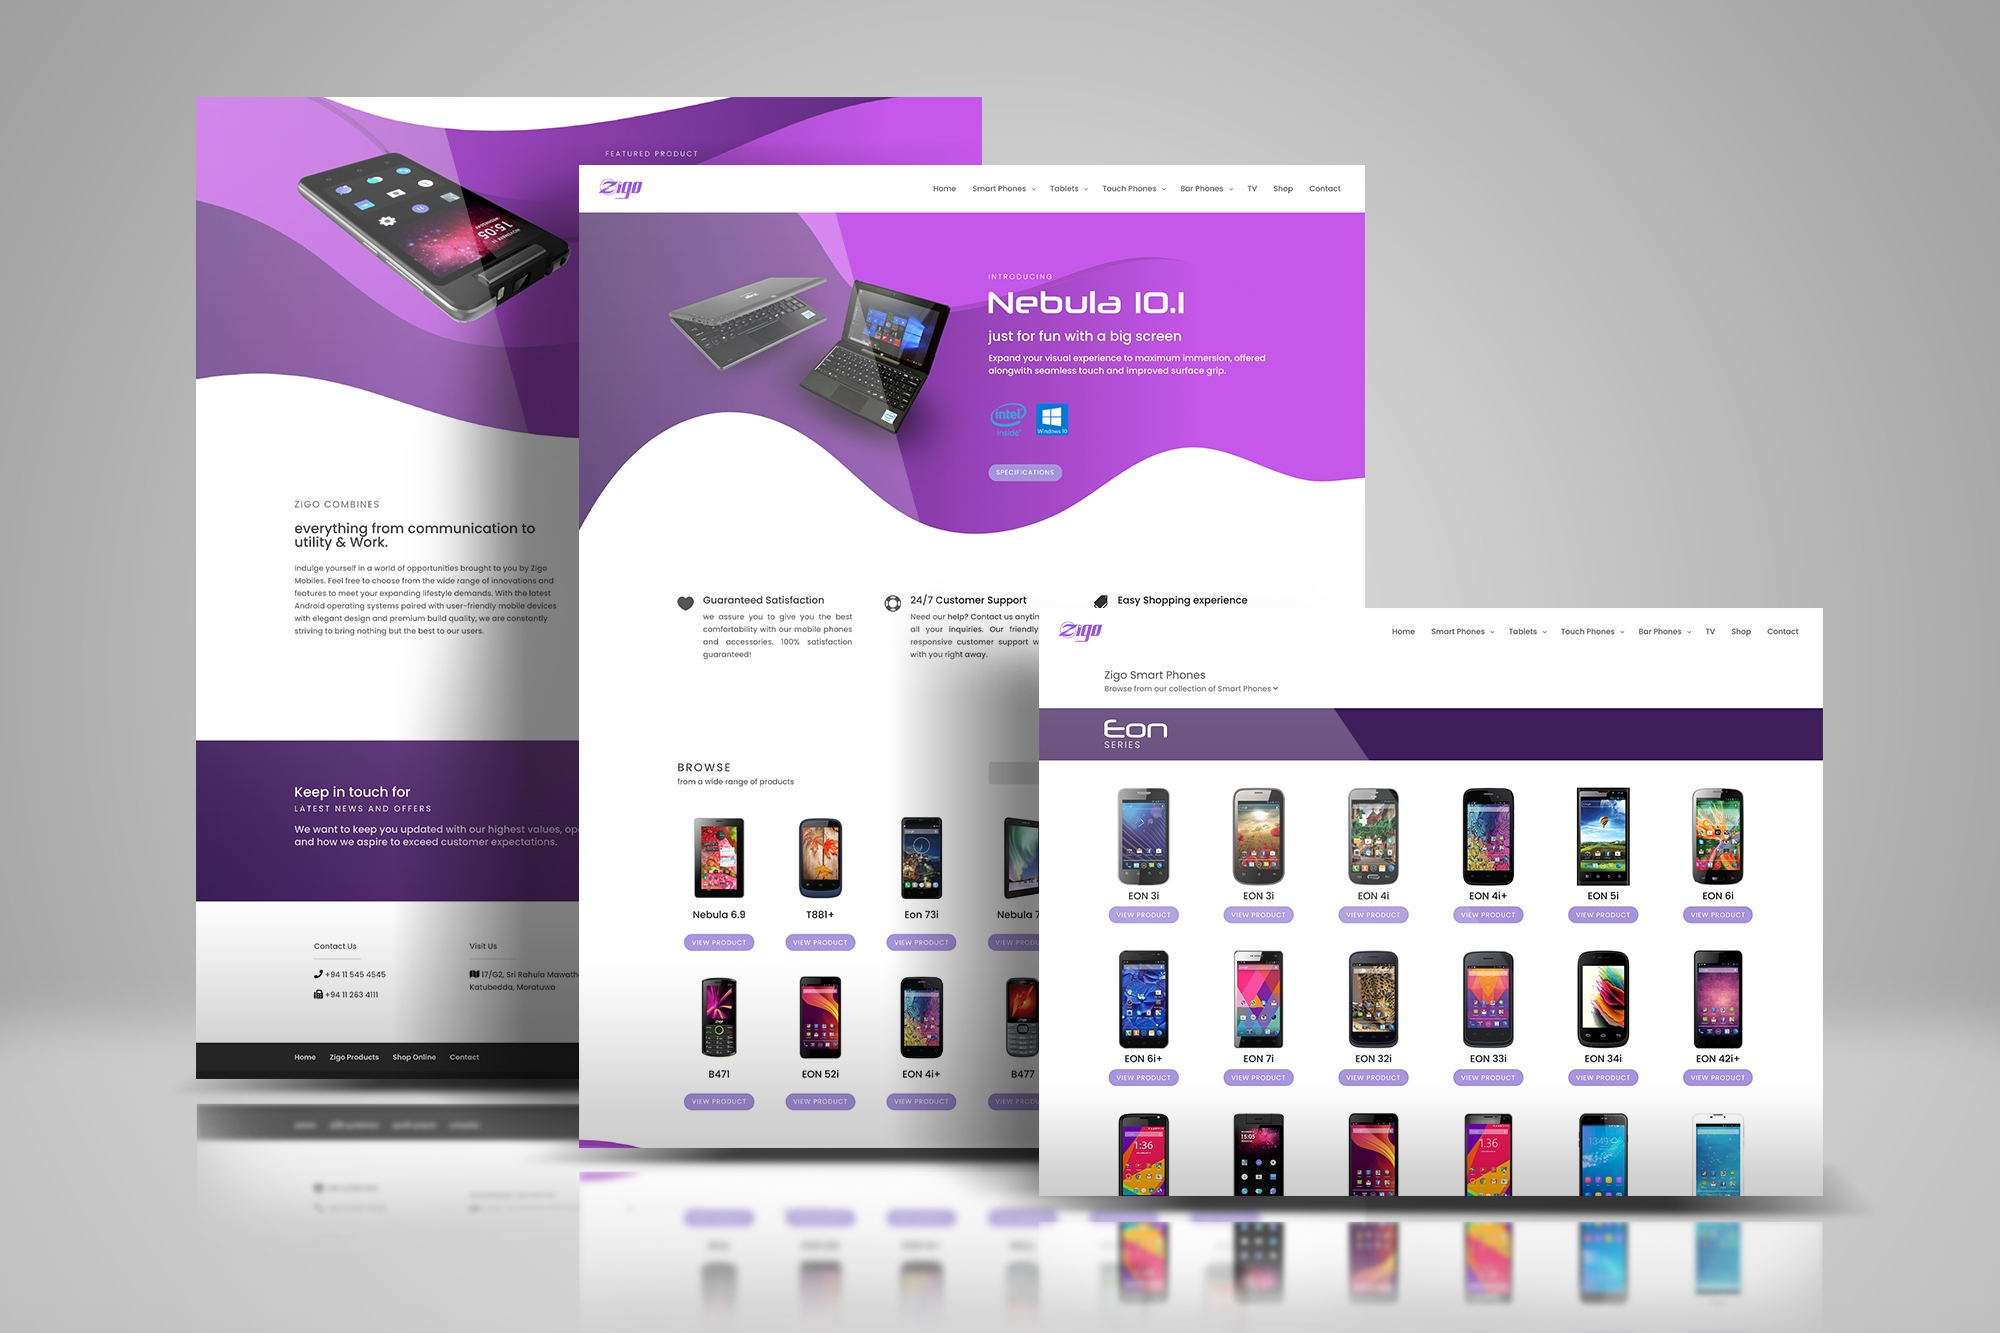 Web design done for a mobile brand